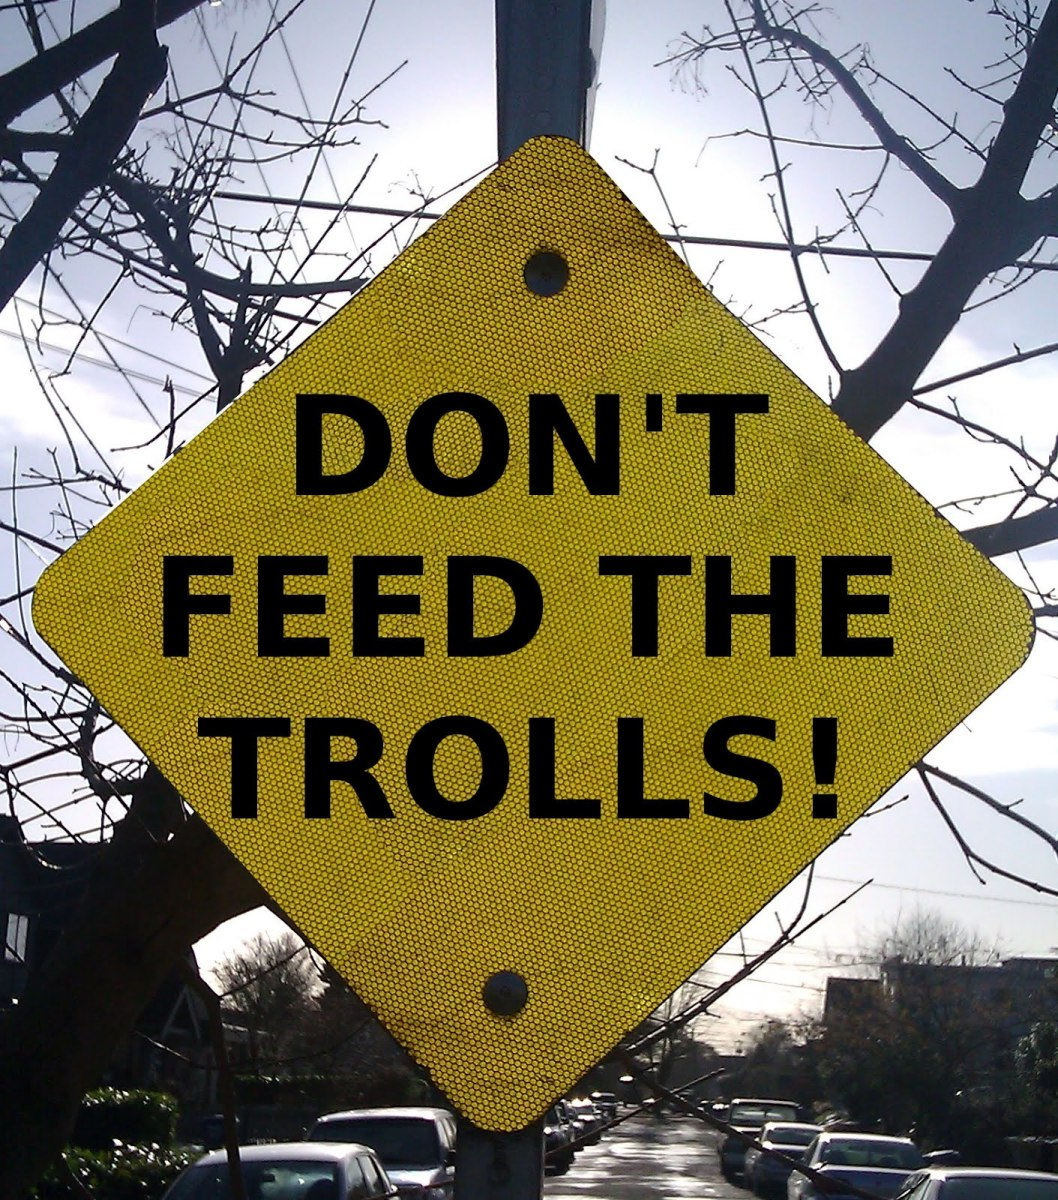 Keep your cool with the troll, don't let them get under your skin and, whatever you do, don't let them smell your fear.